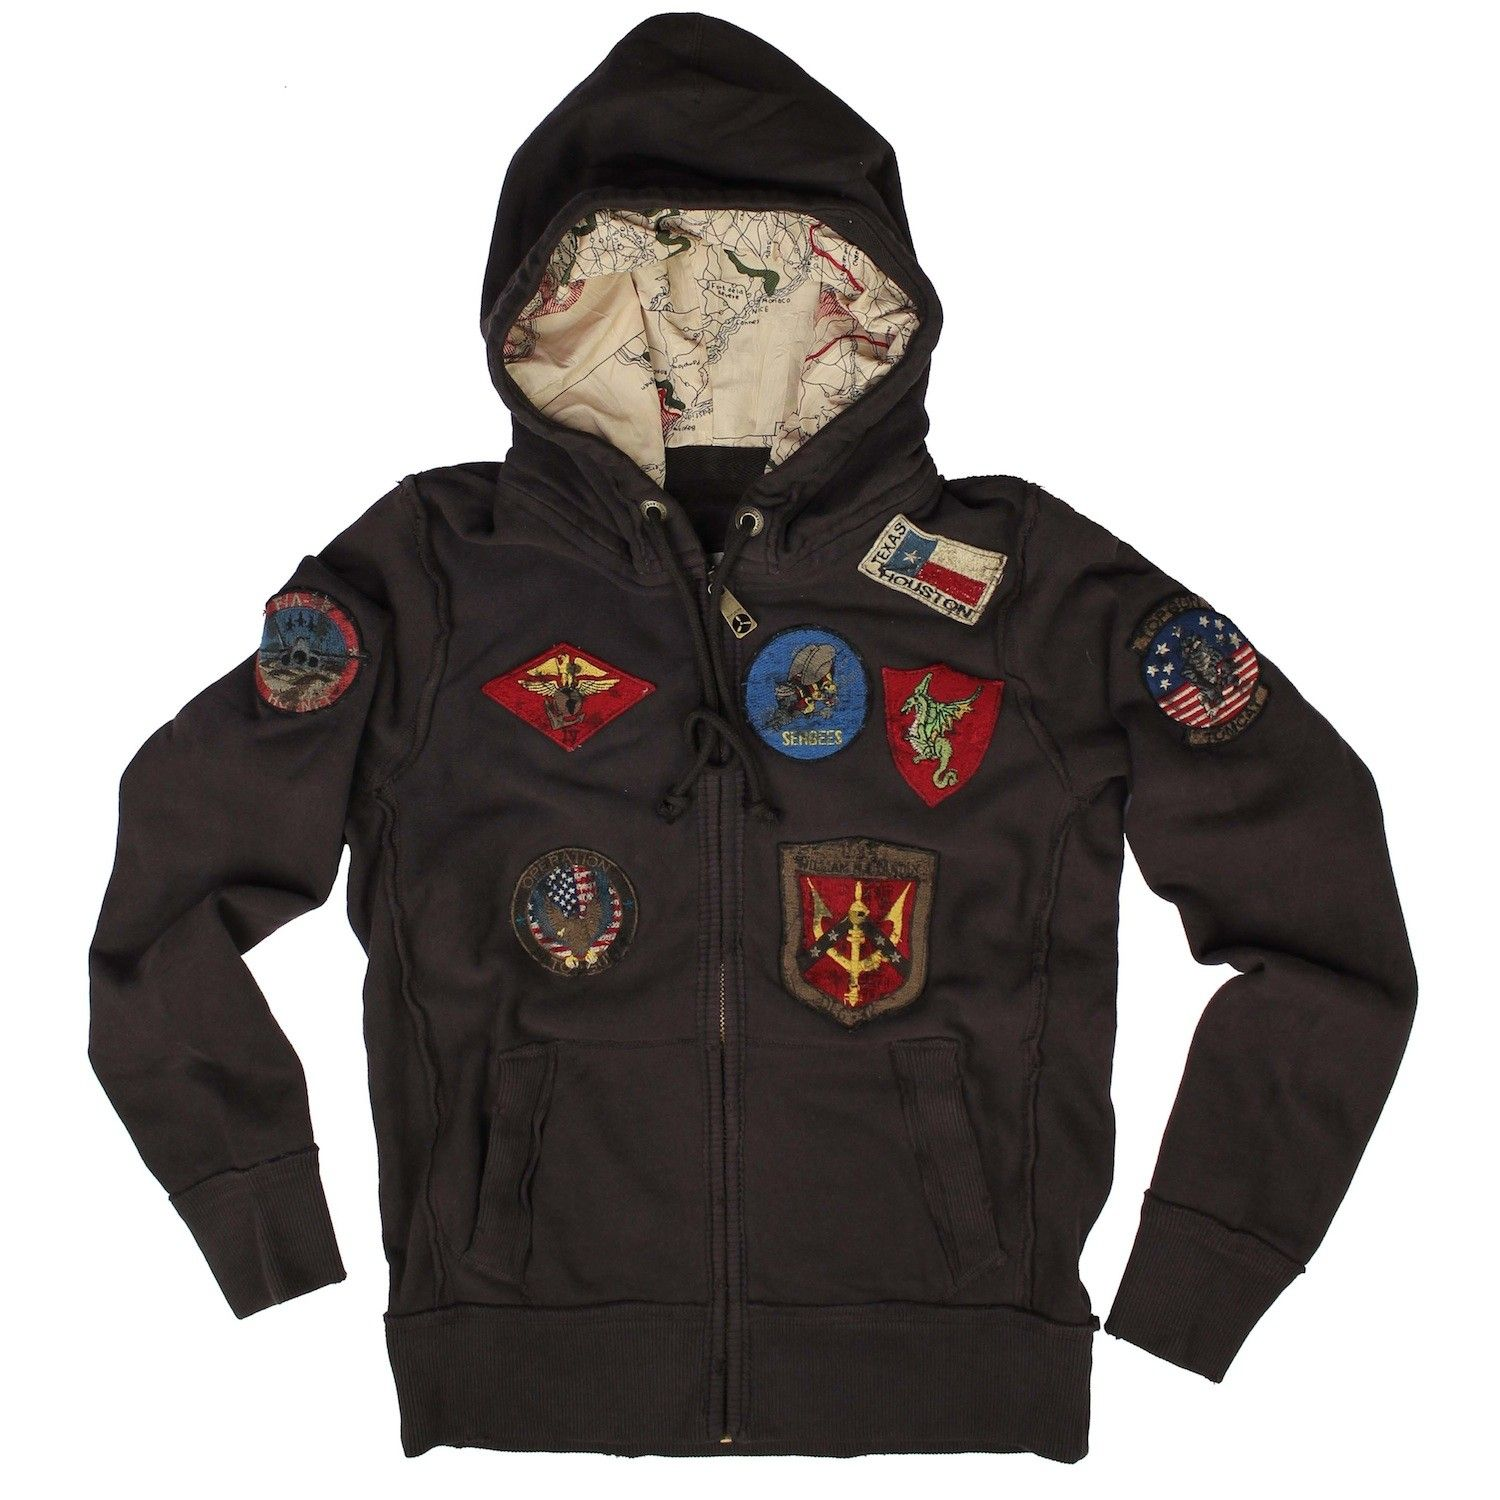 b5a45bb5e1c Official Top Gun Hoodie With Patches -  65 - Ships in 7-10 Days -